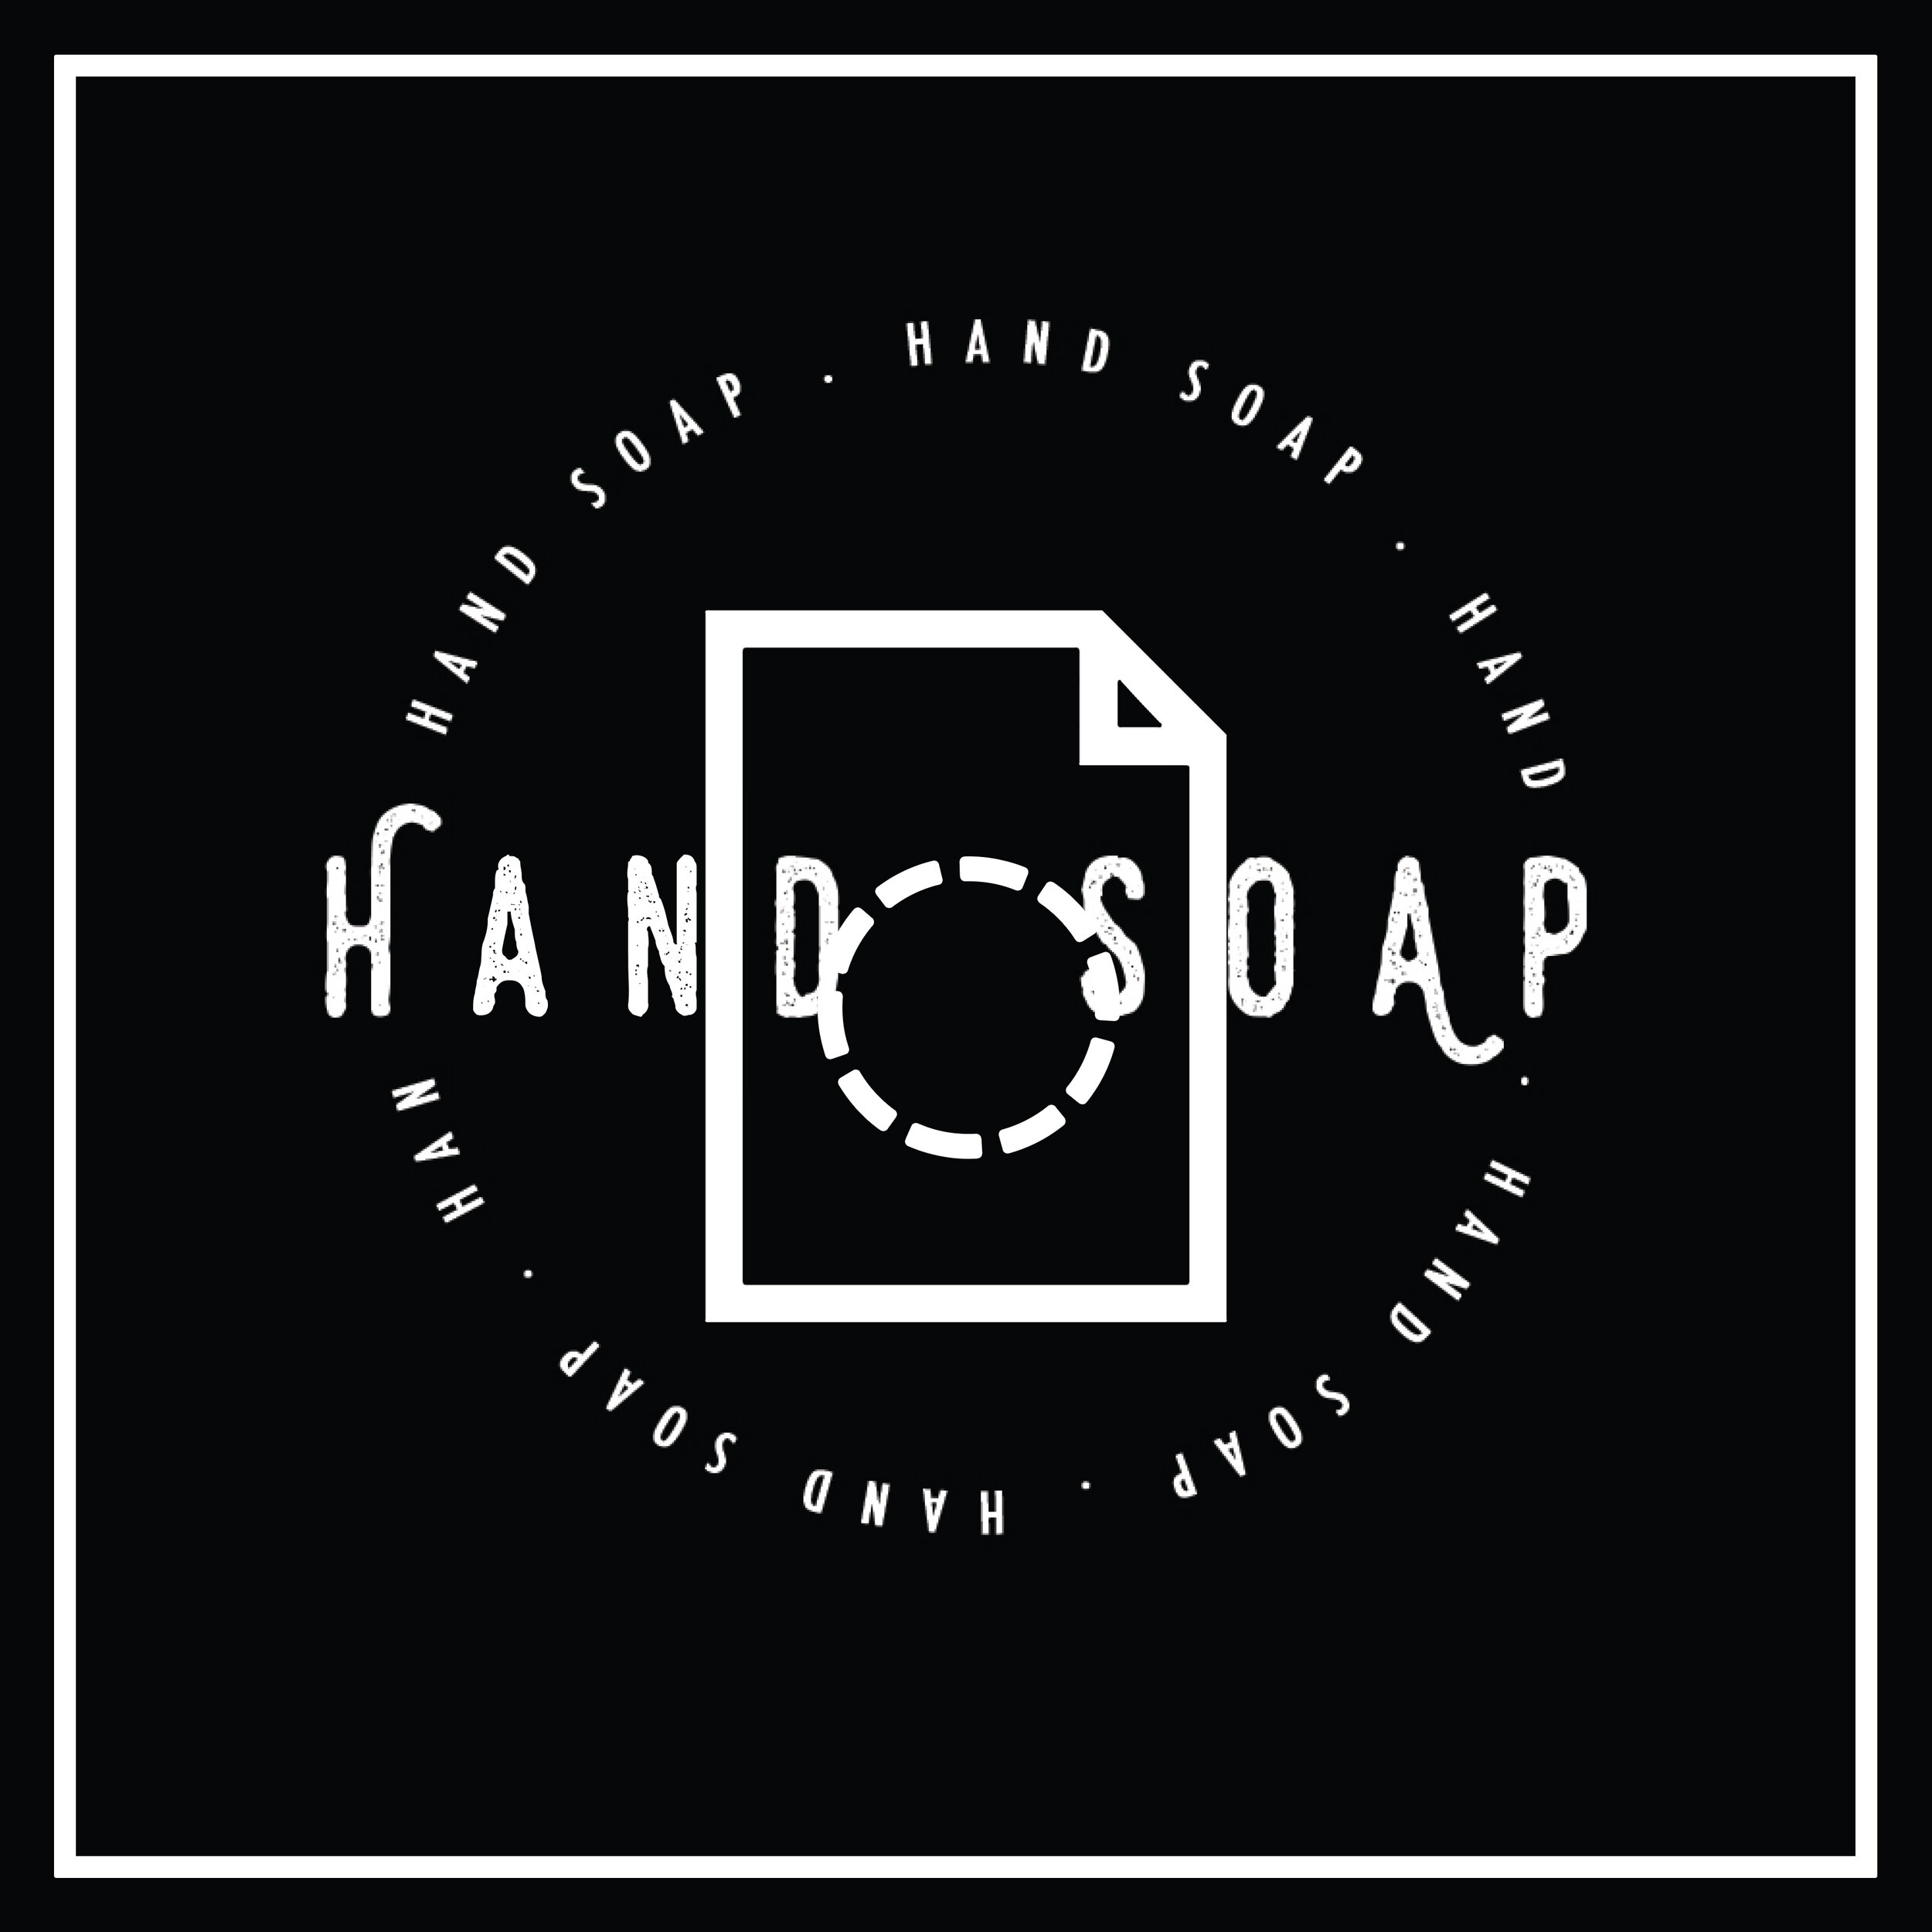 Free Soap Label Template Download from images.squarespace-cdn.com